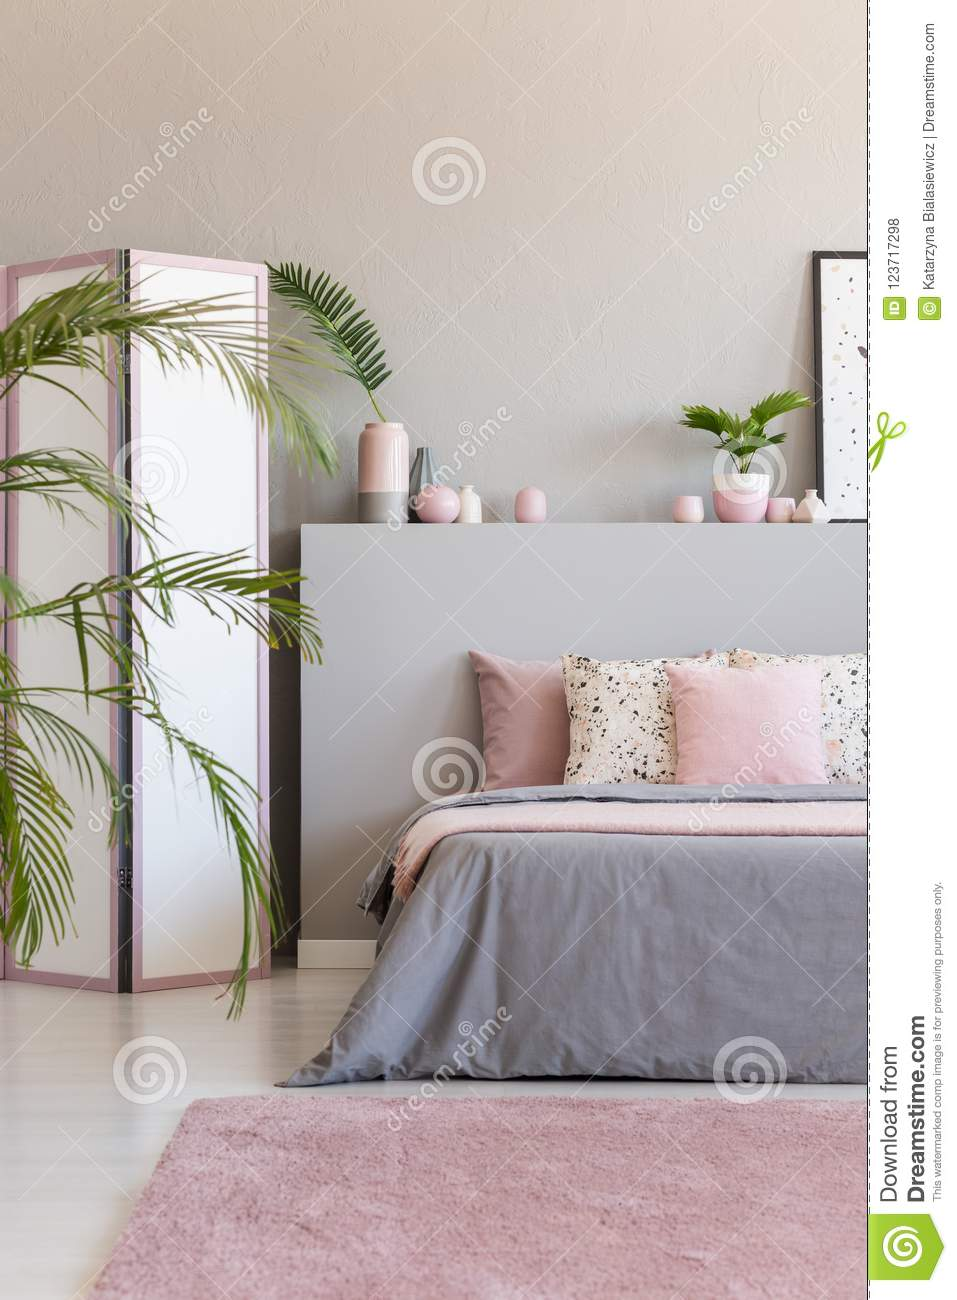 Pink Carpet In Front Of Grey Bed With Cushions In Bedroom Interior ...